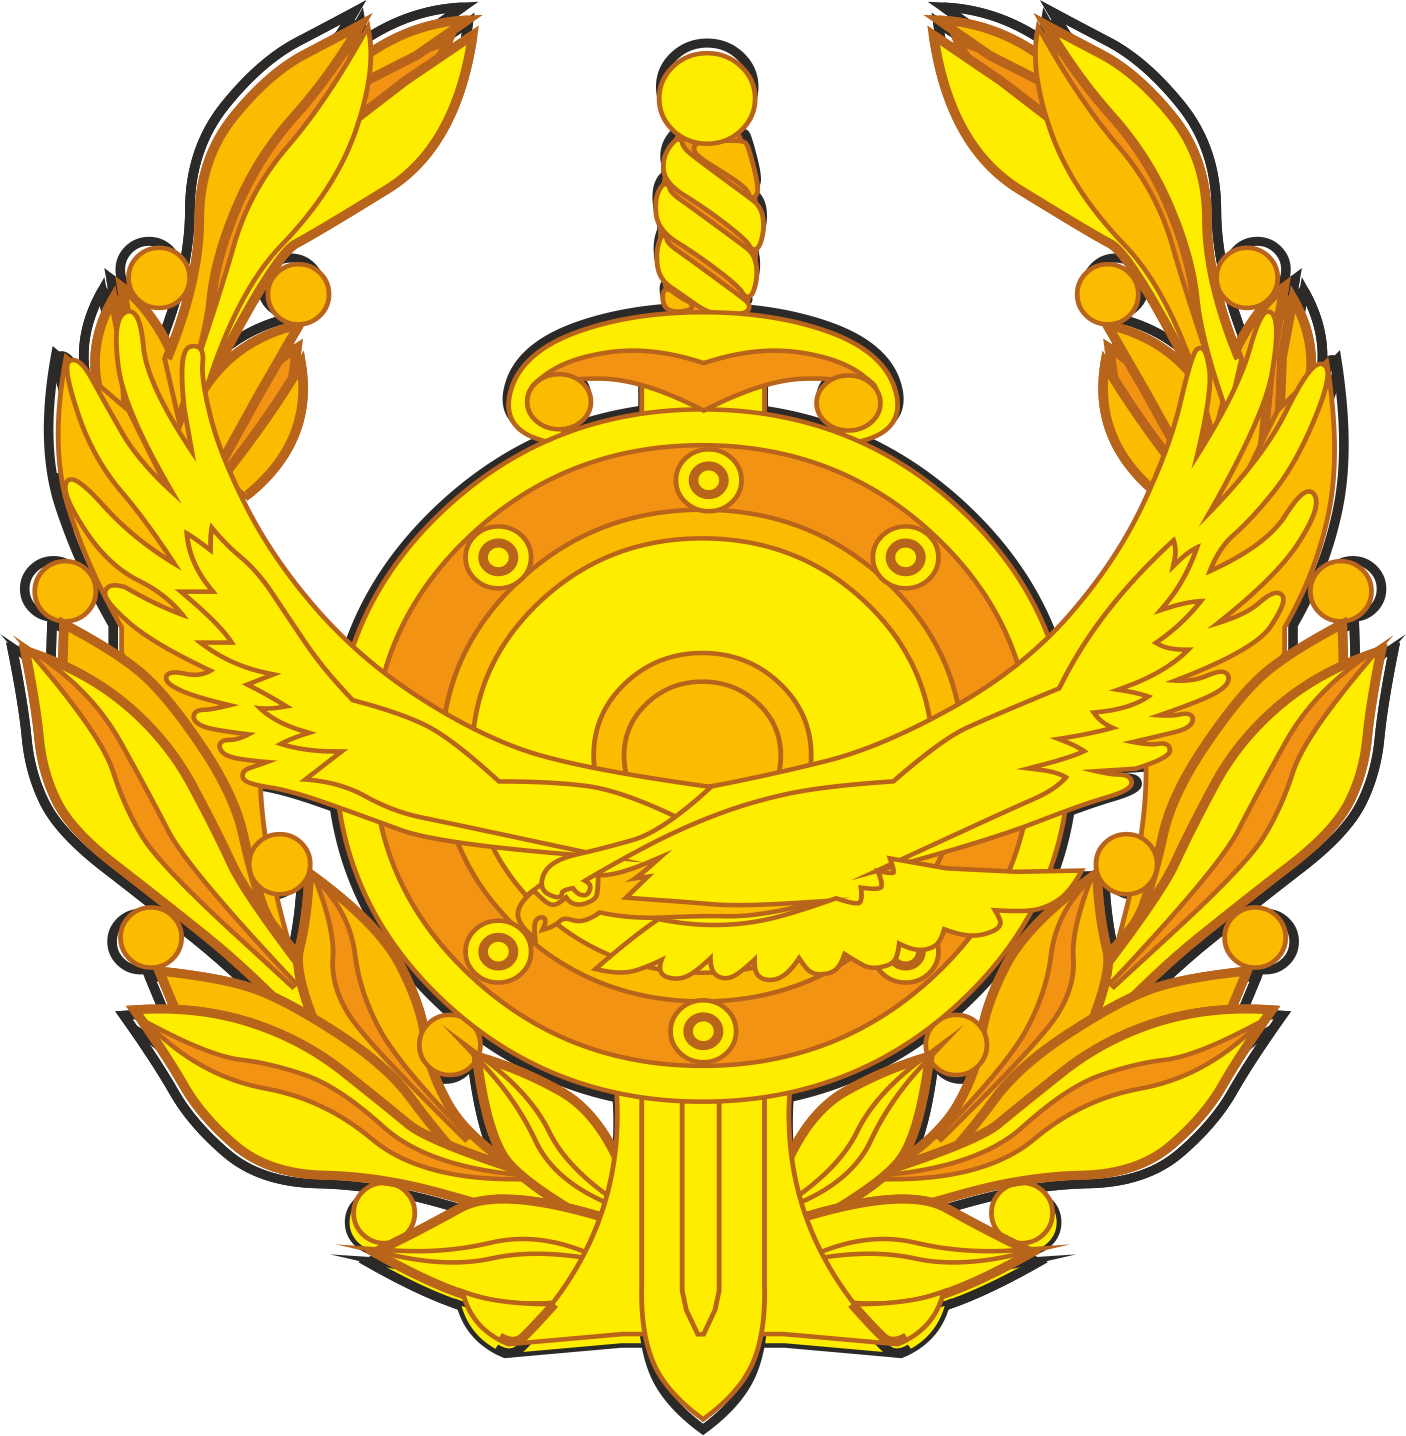 Logo of the Ministry of internal Affairs of the Republic of Kazakhstan